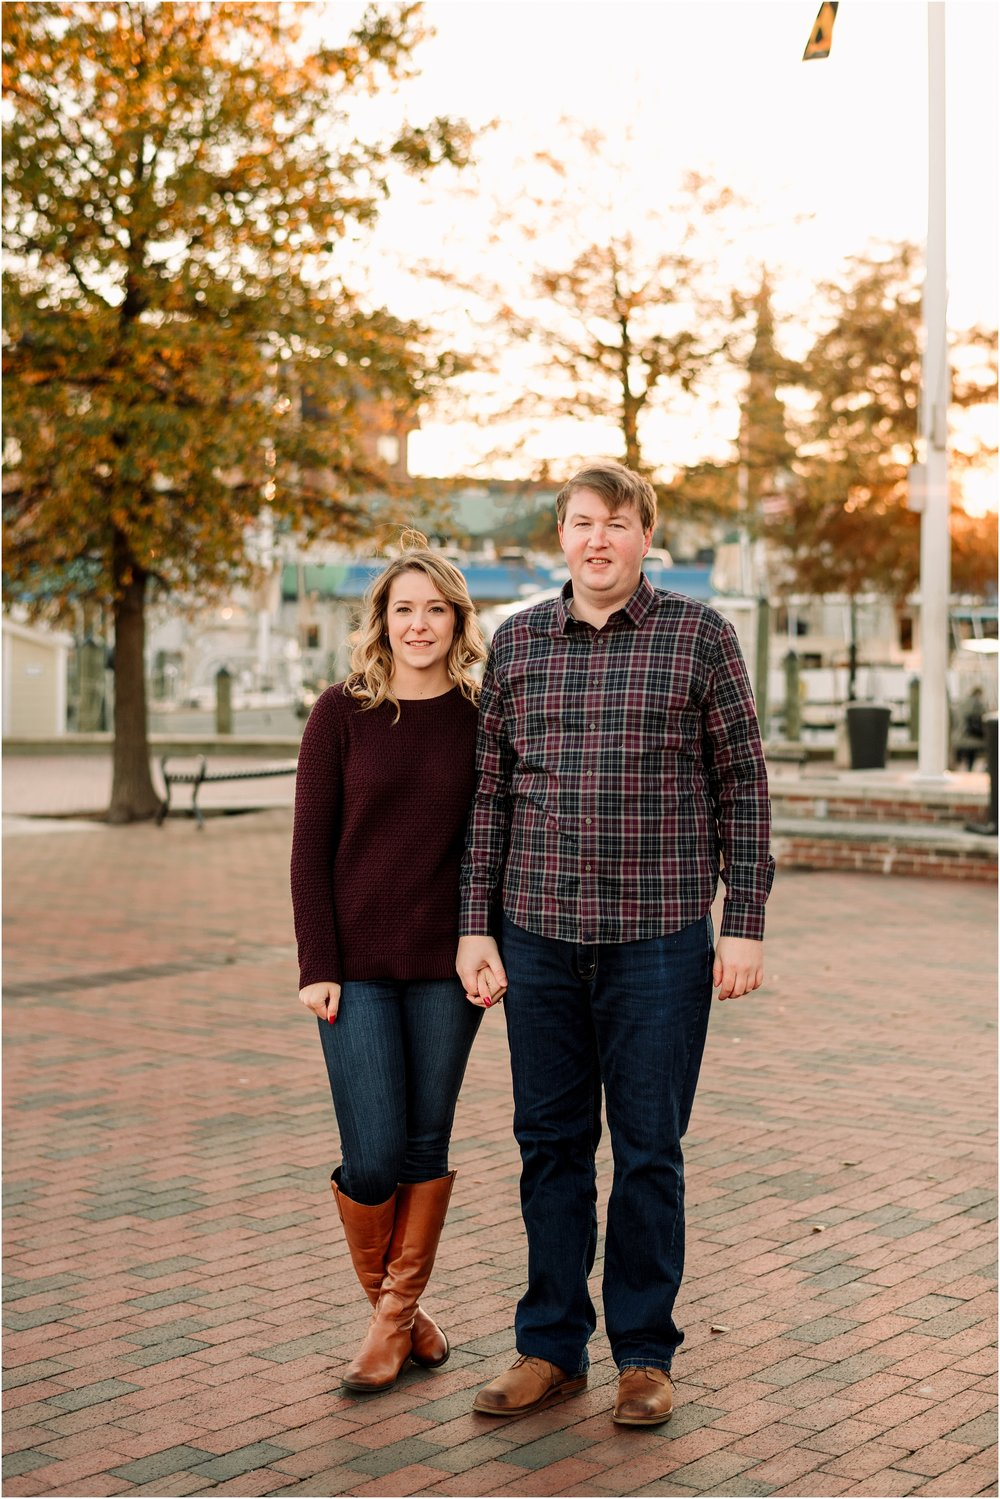 hannah leigh photography Annapolis MD Engagement Session_2369.jpg